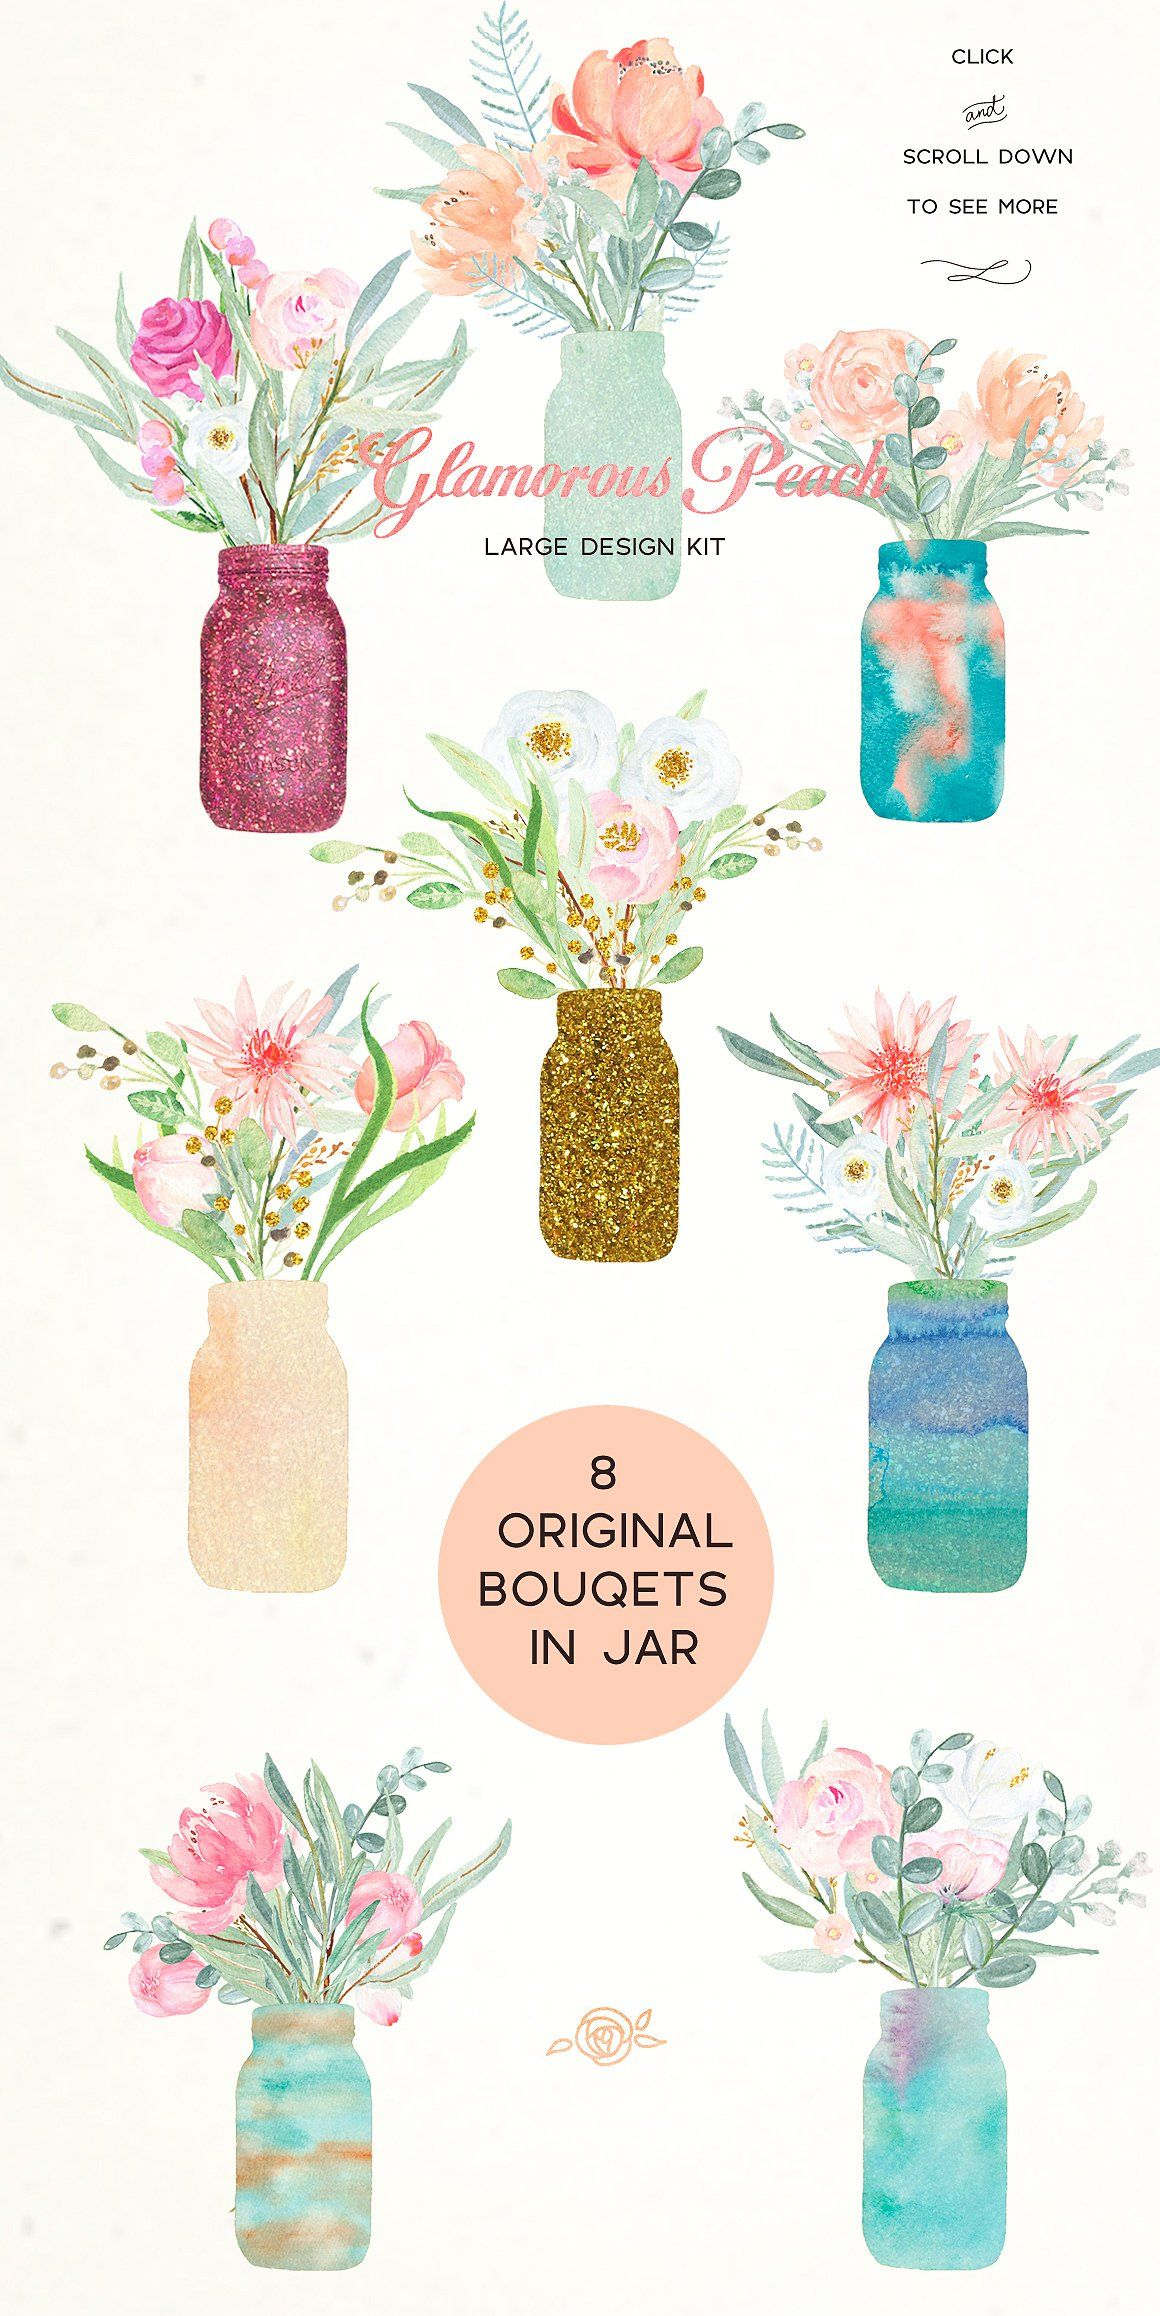 SALE -50%OFF.Peach peonies in jars. by LABFcreations on @creativemarket